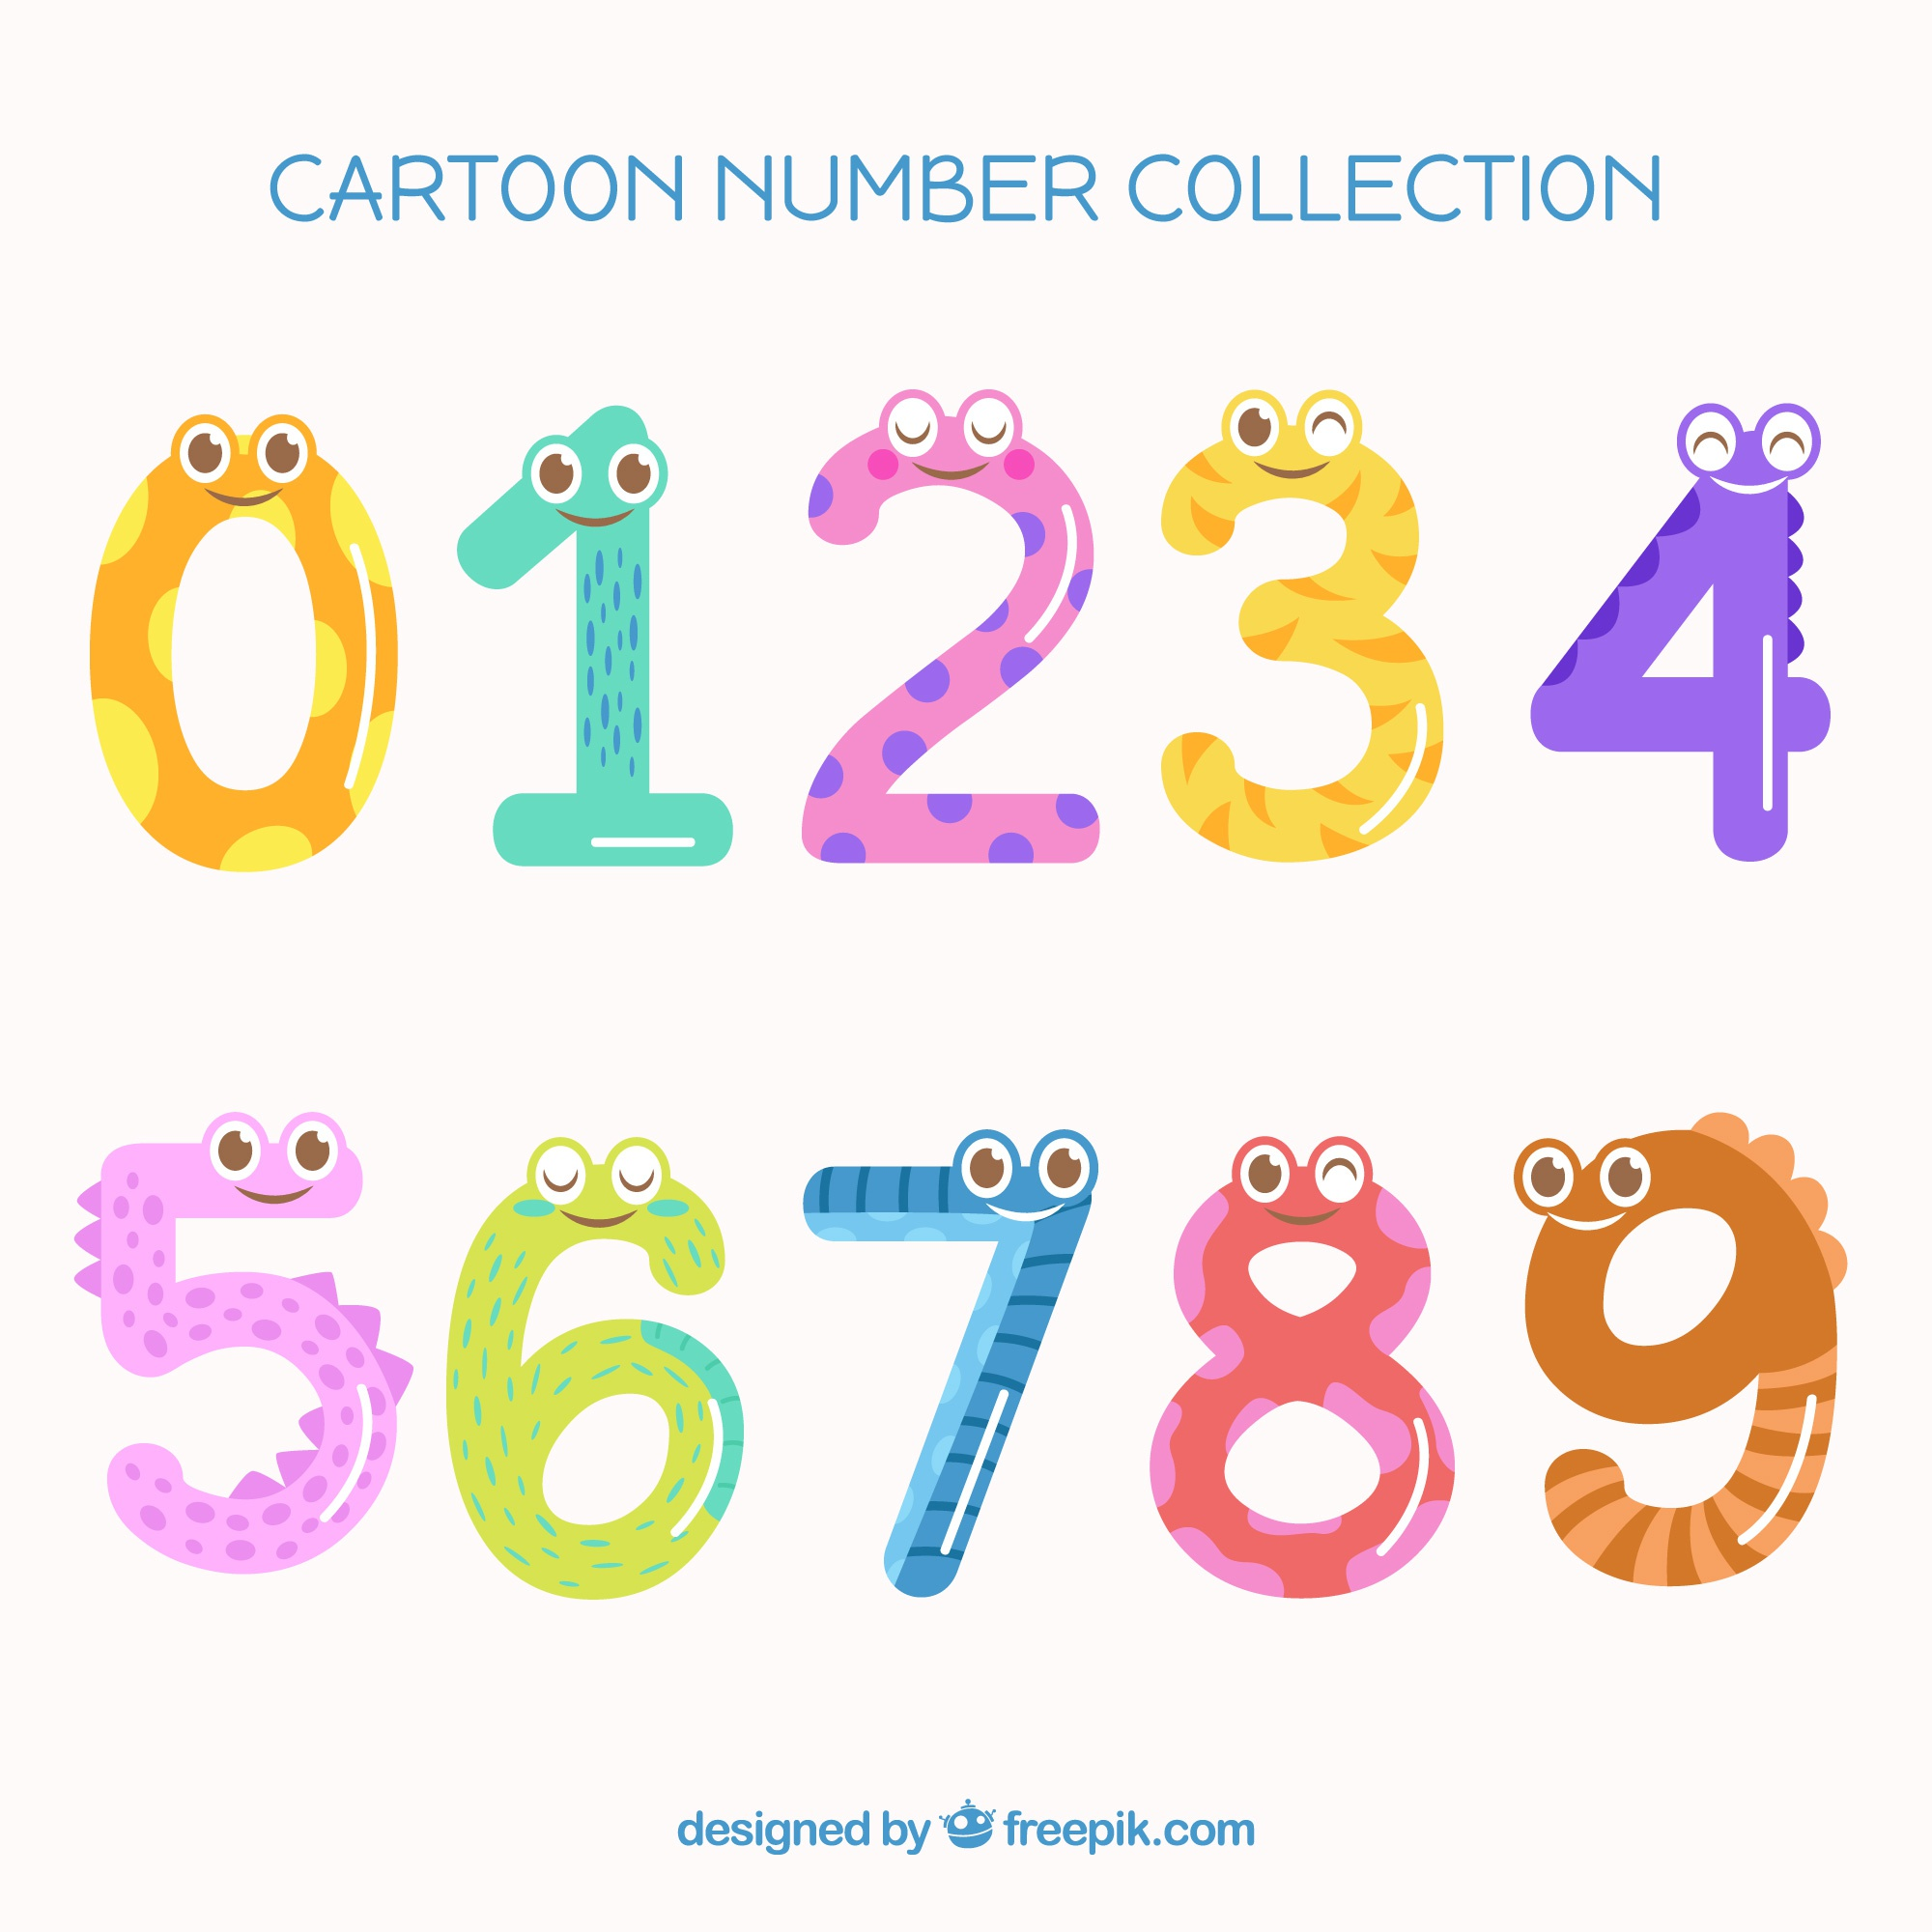 Cartoon number collection